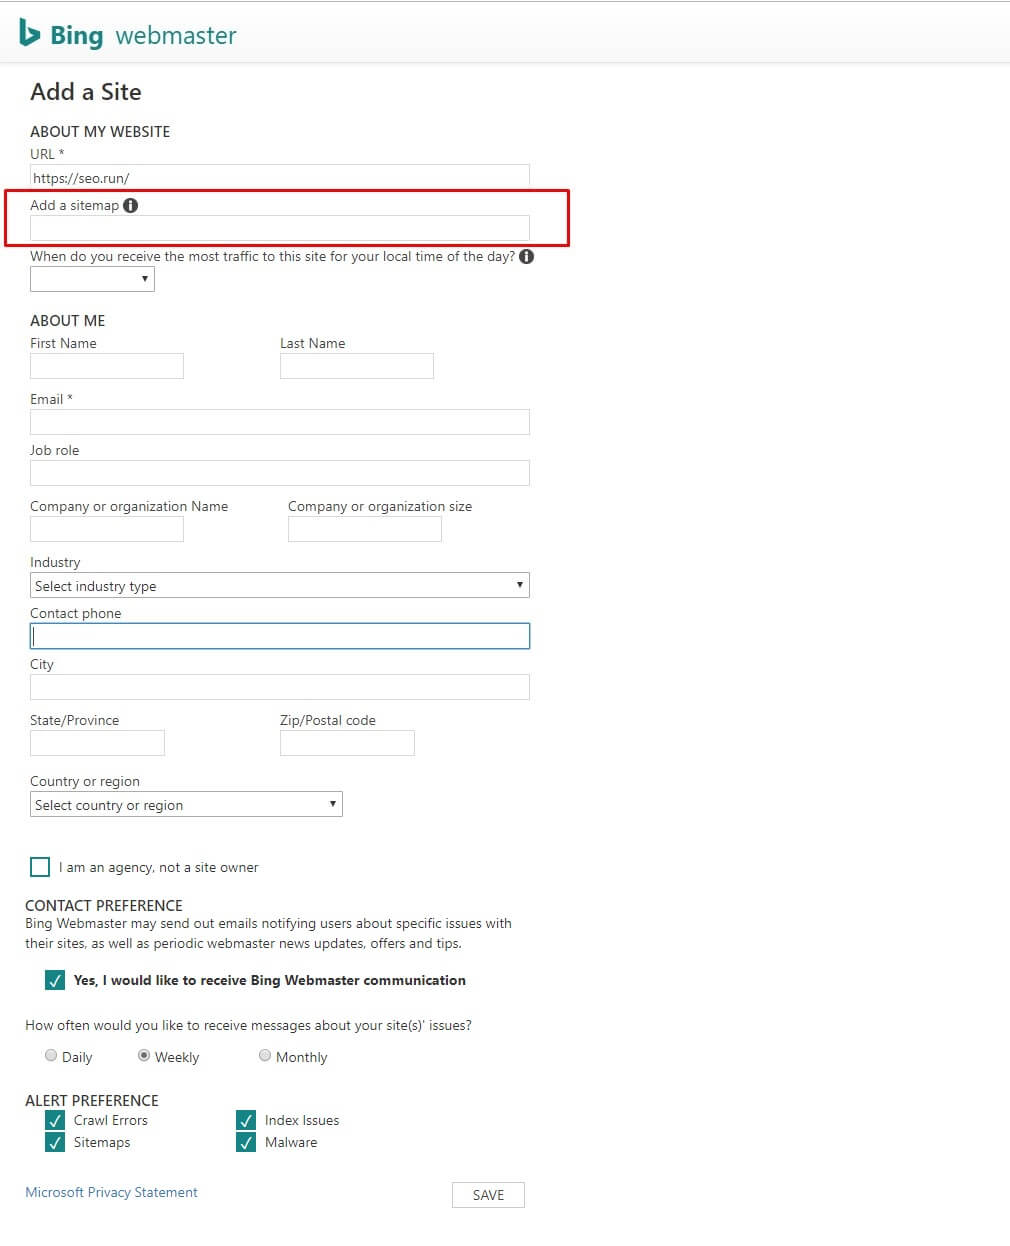 Add a sitemap in the Bing Webmaster Tool